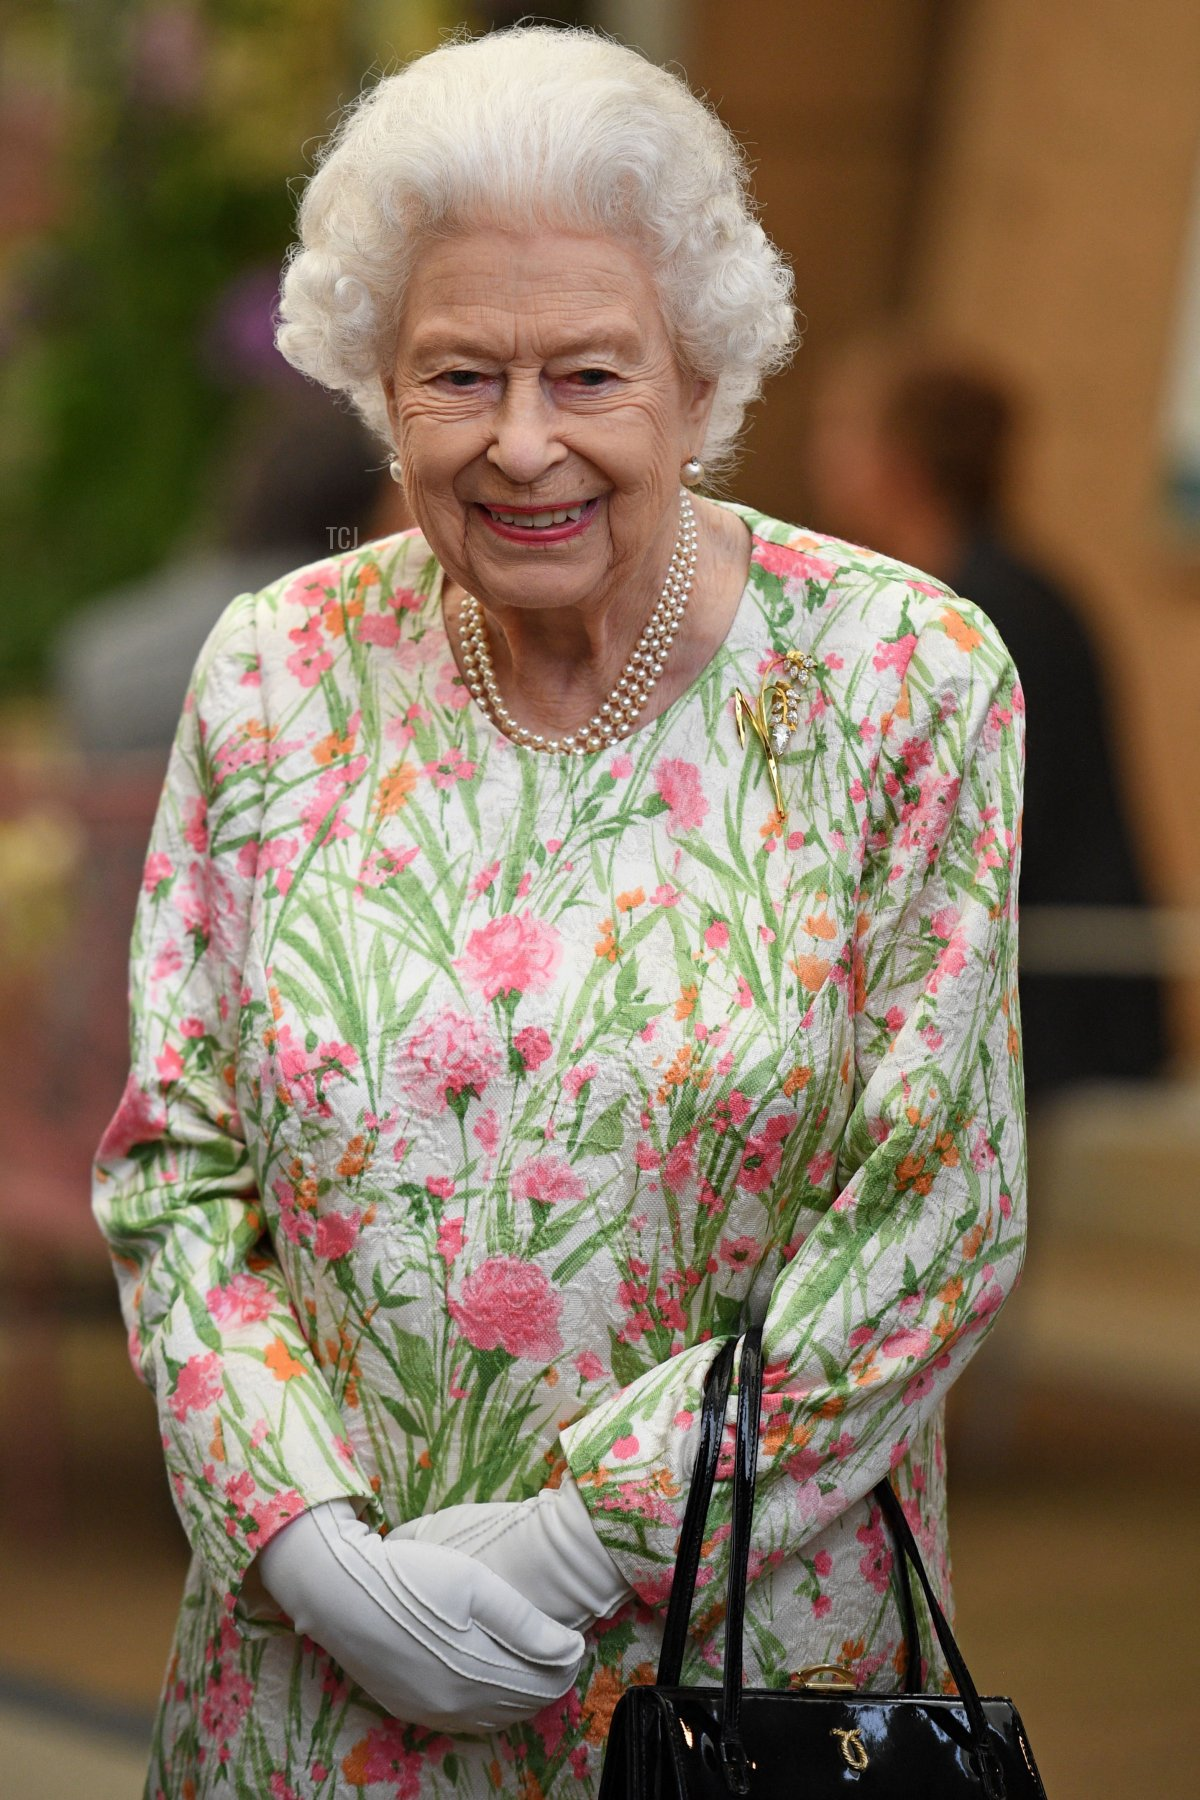 Britain's Queen Elizabeth II smiles as she meets people from communities across Cornwall during an event in celebration of The Big Lunch initiative at The Eden Project, near St Austell in south west England on June 11, 2021